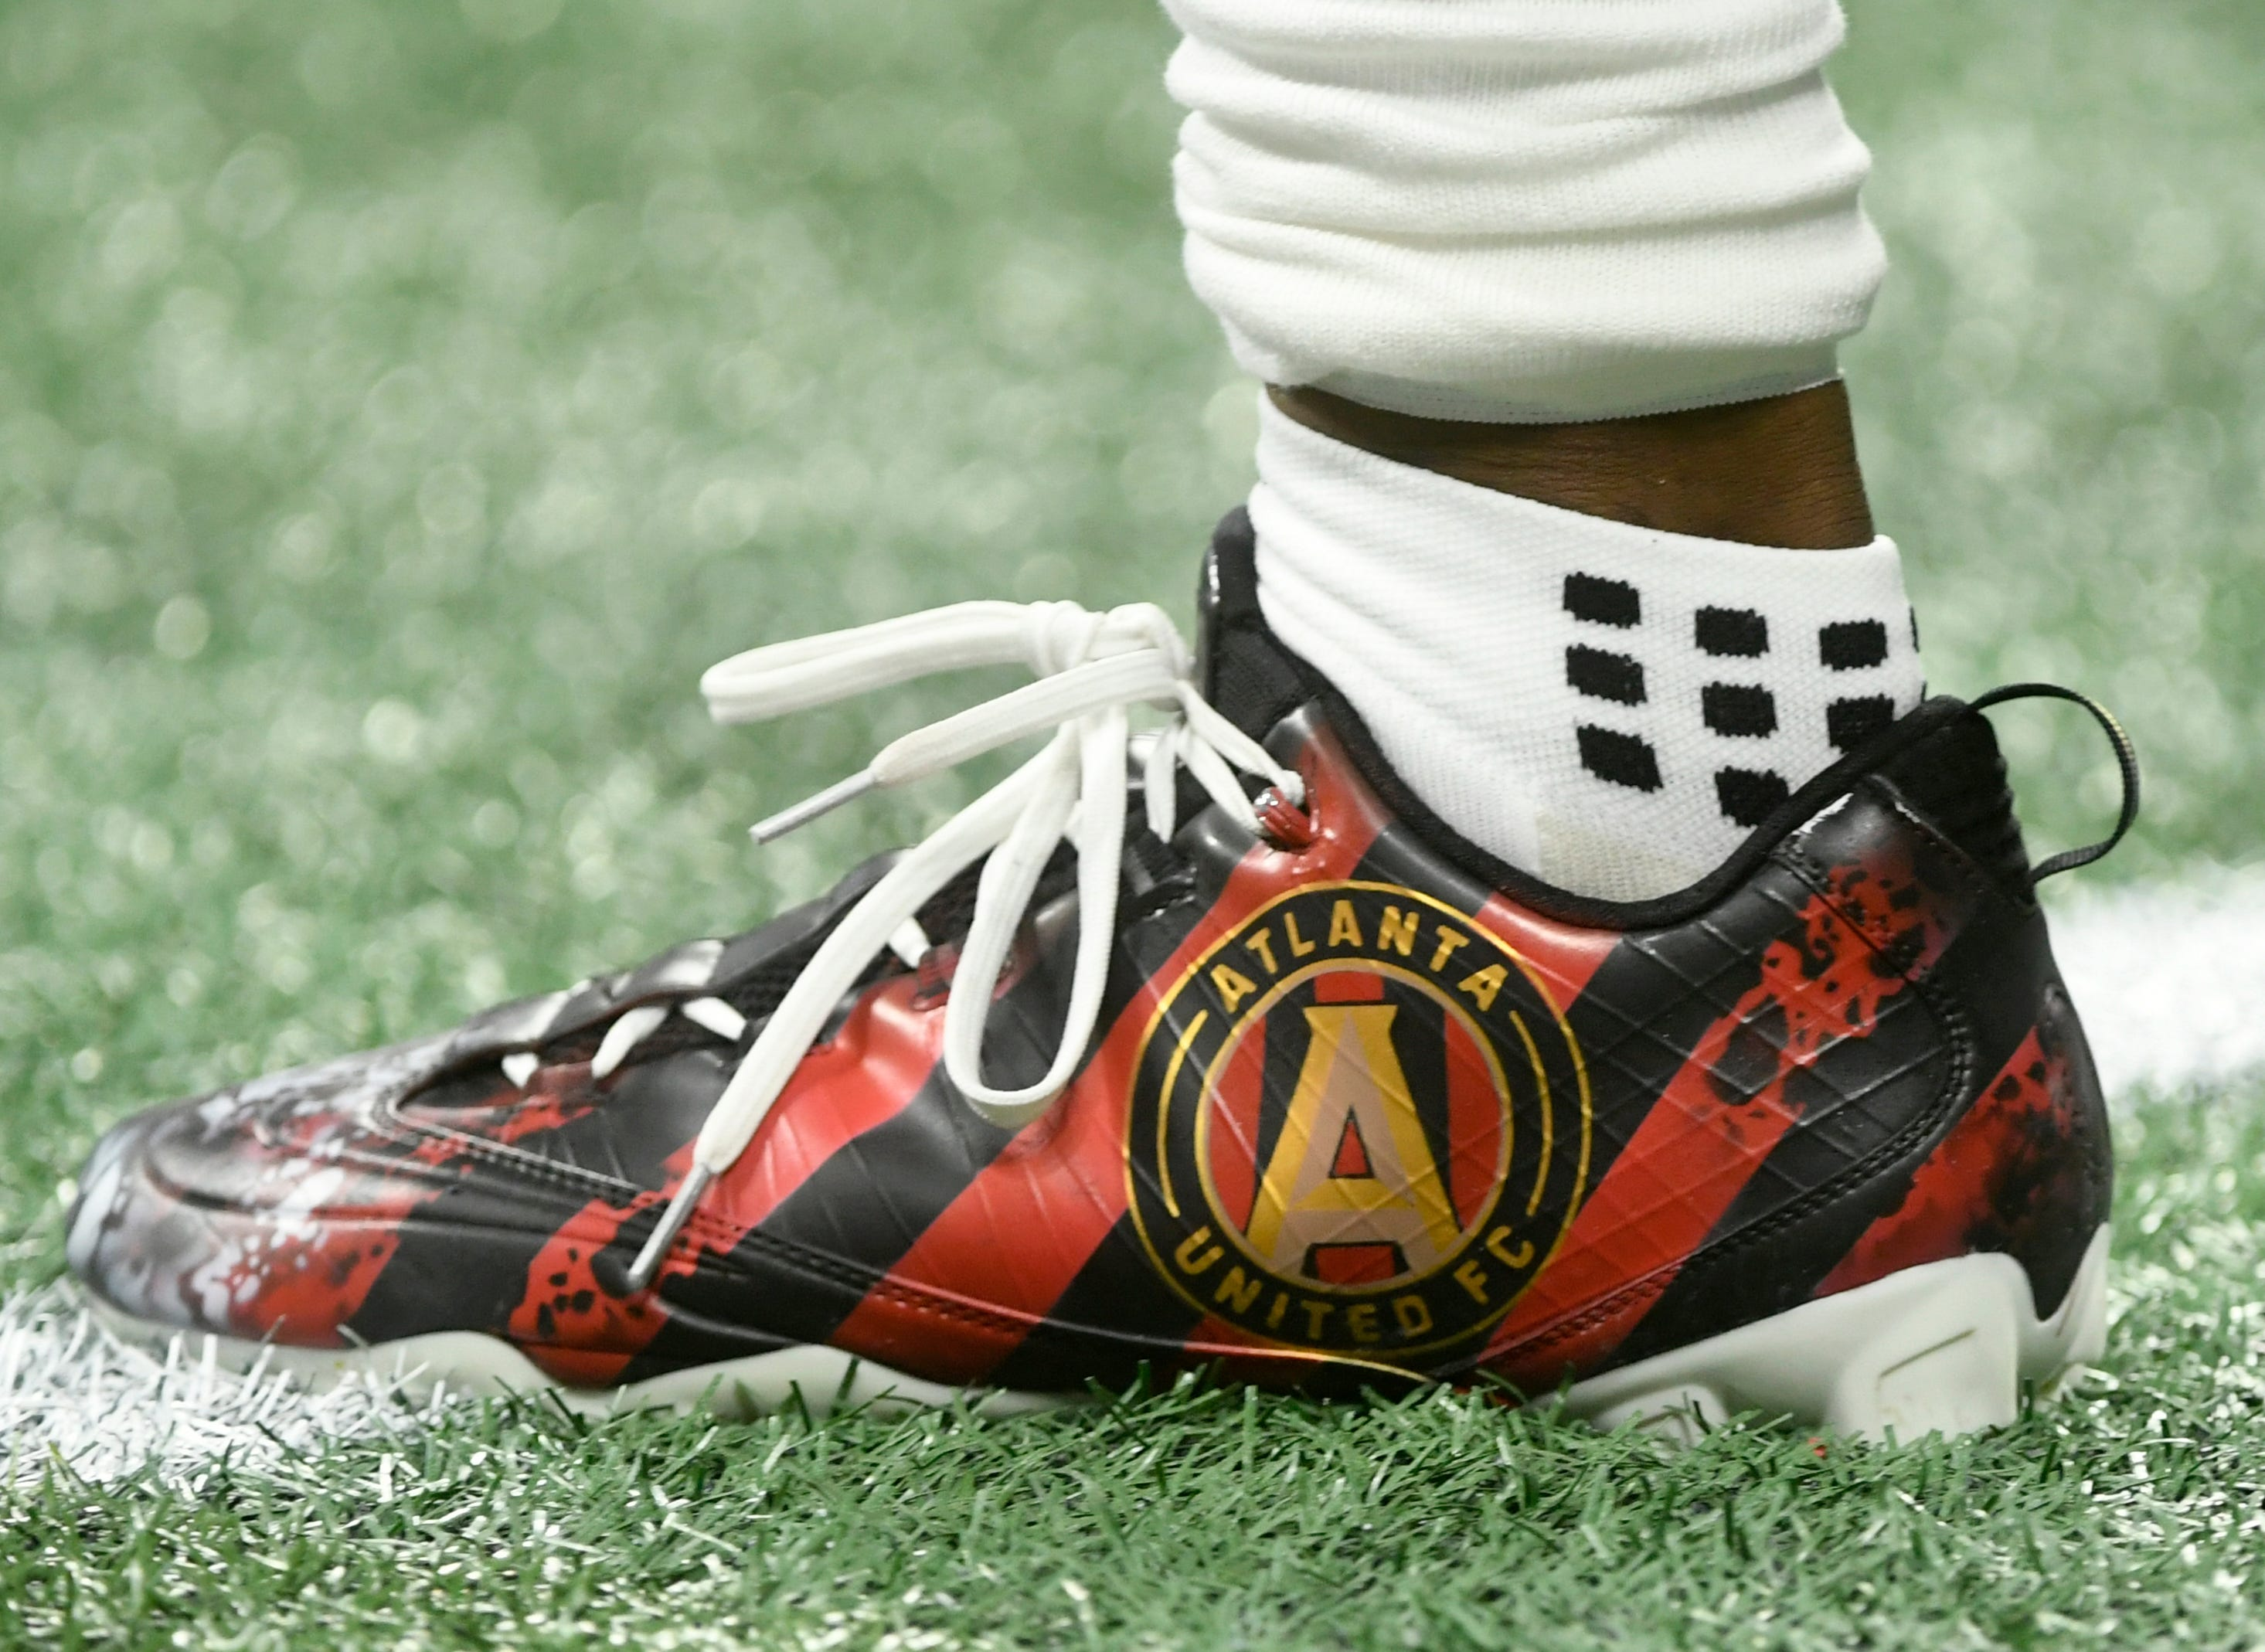 Atlanta Falcons wide receiver Mohamed Sanu wears shoes featuring the logo of Atlanta United FC, the 2018 Major League Soccer champions.